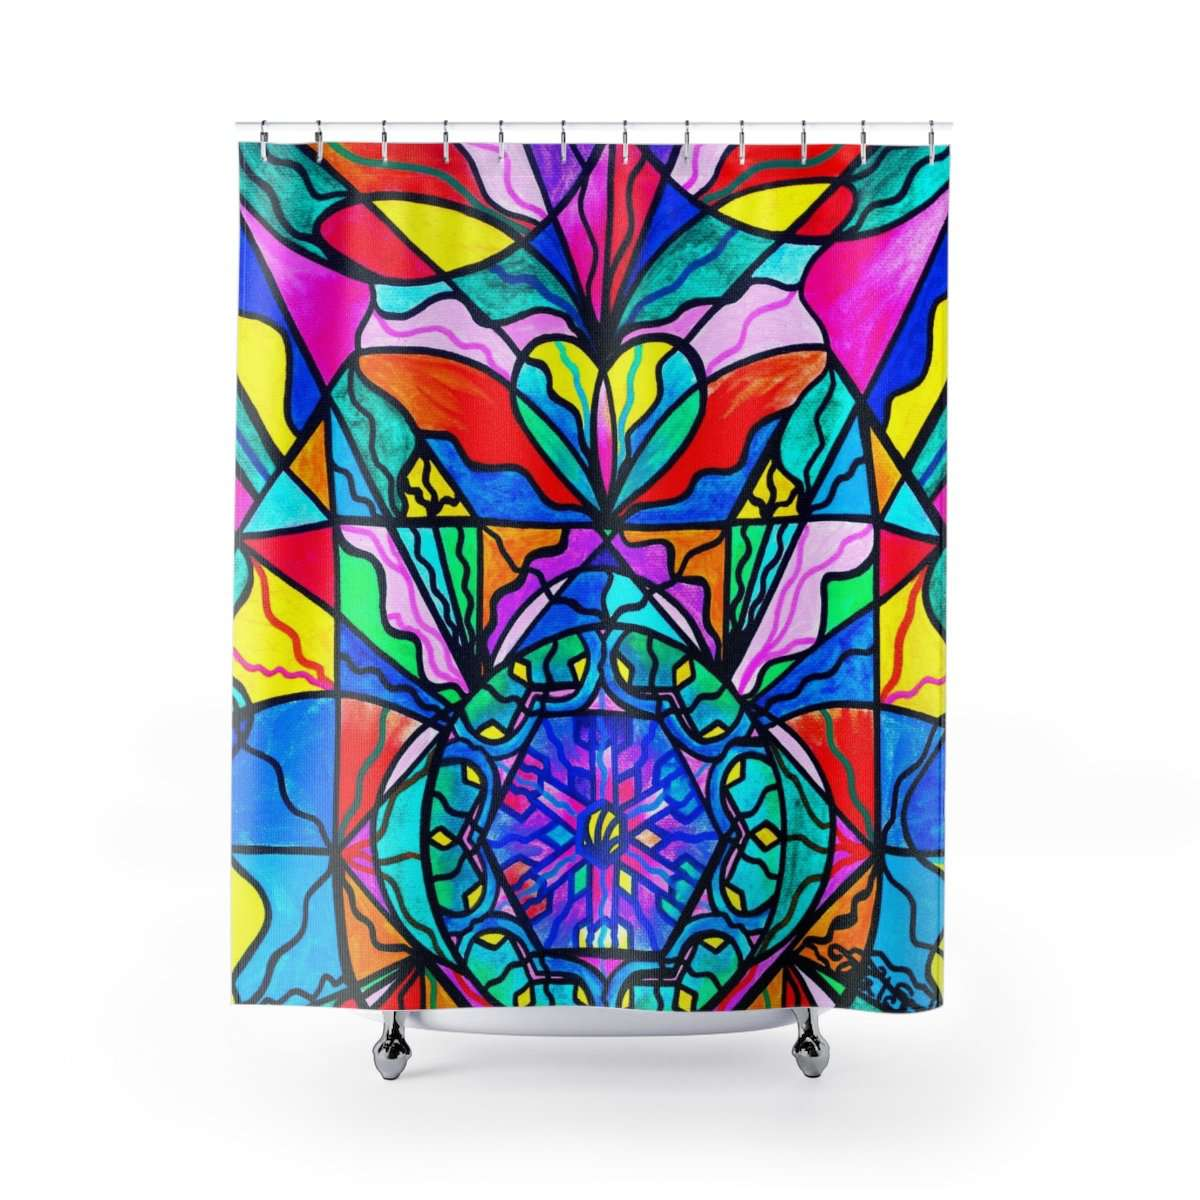 Anahata - Heart Chakra - Shower Curtains